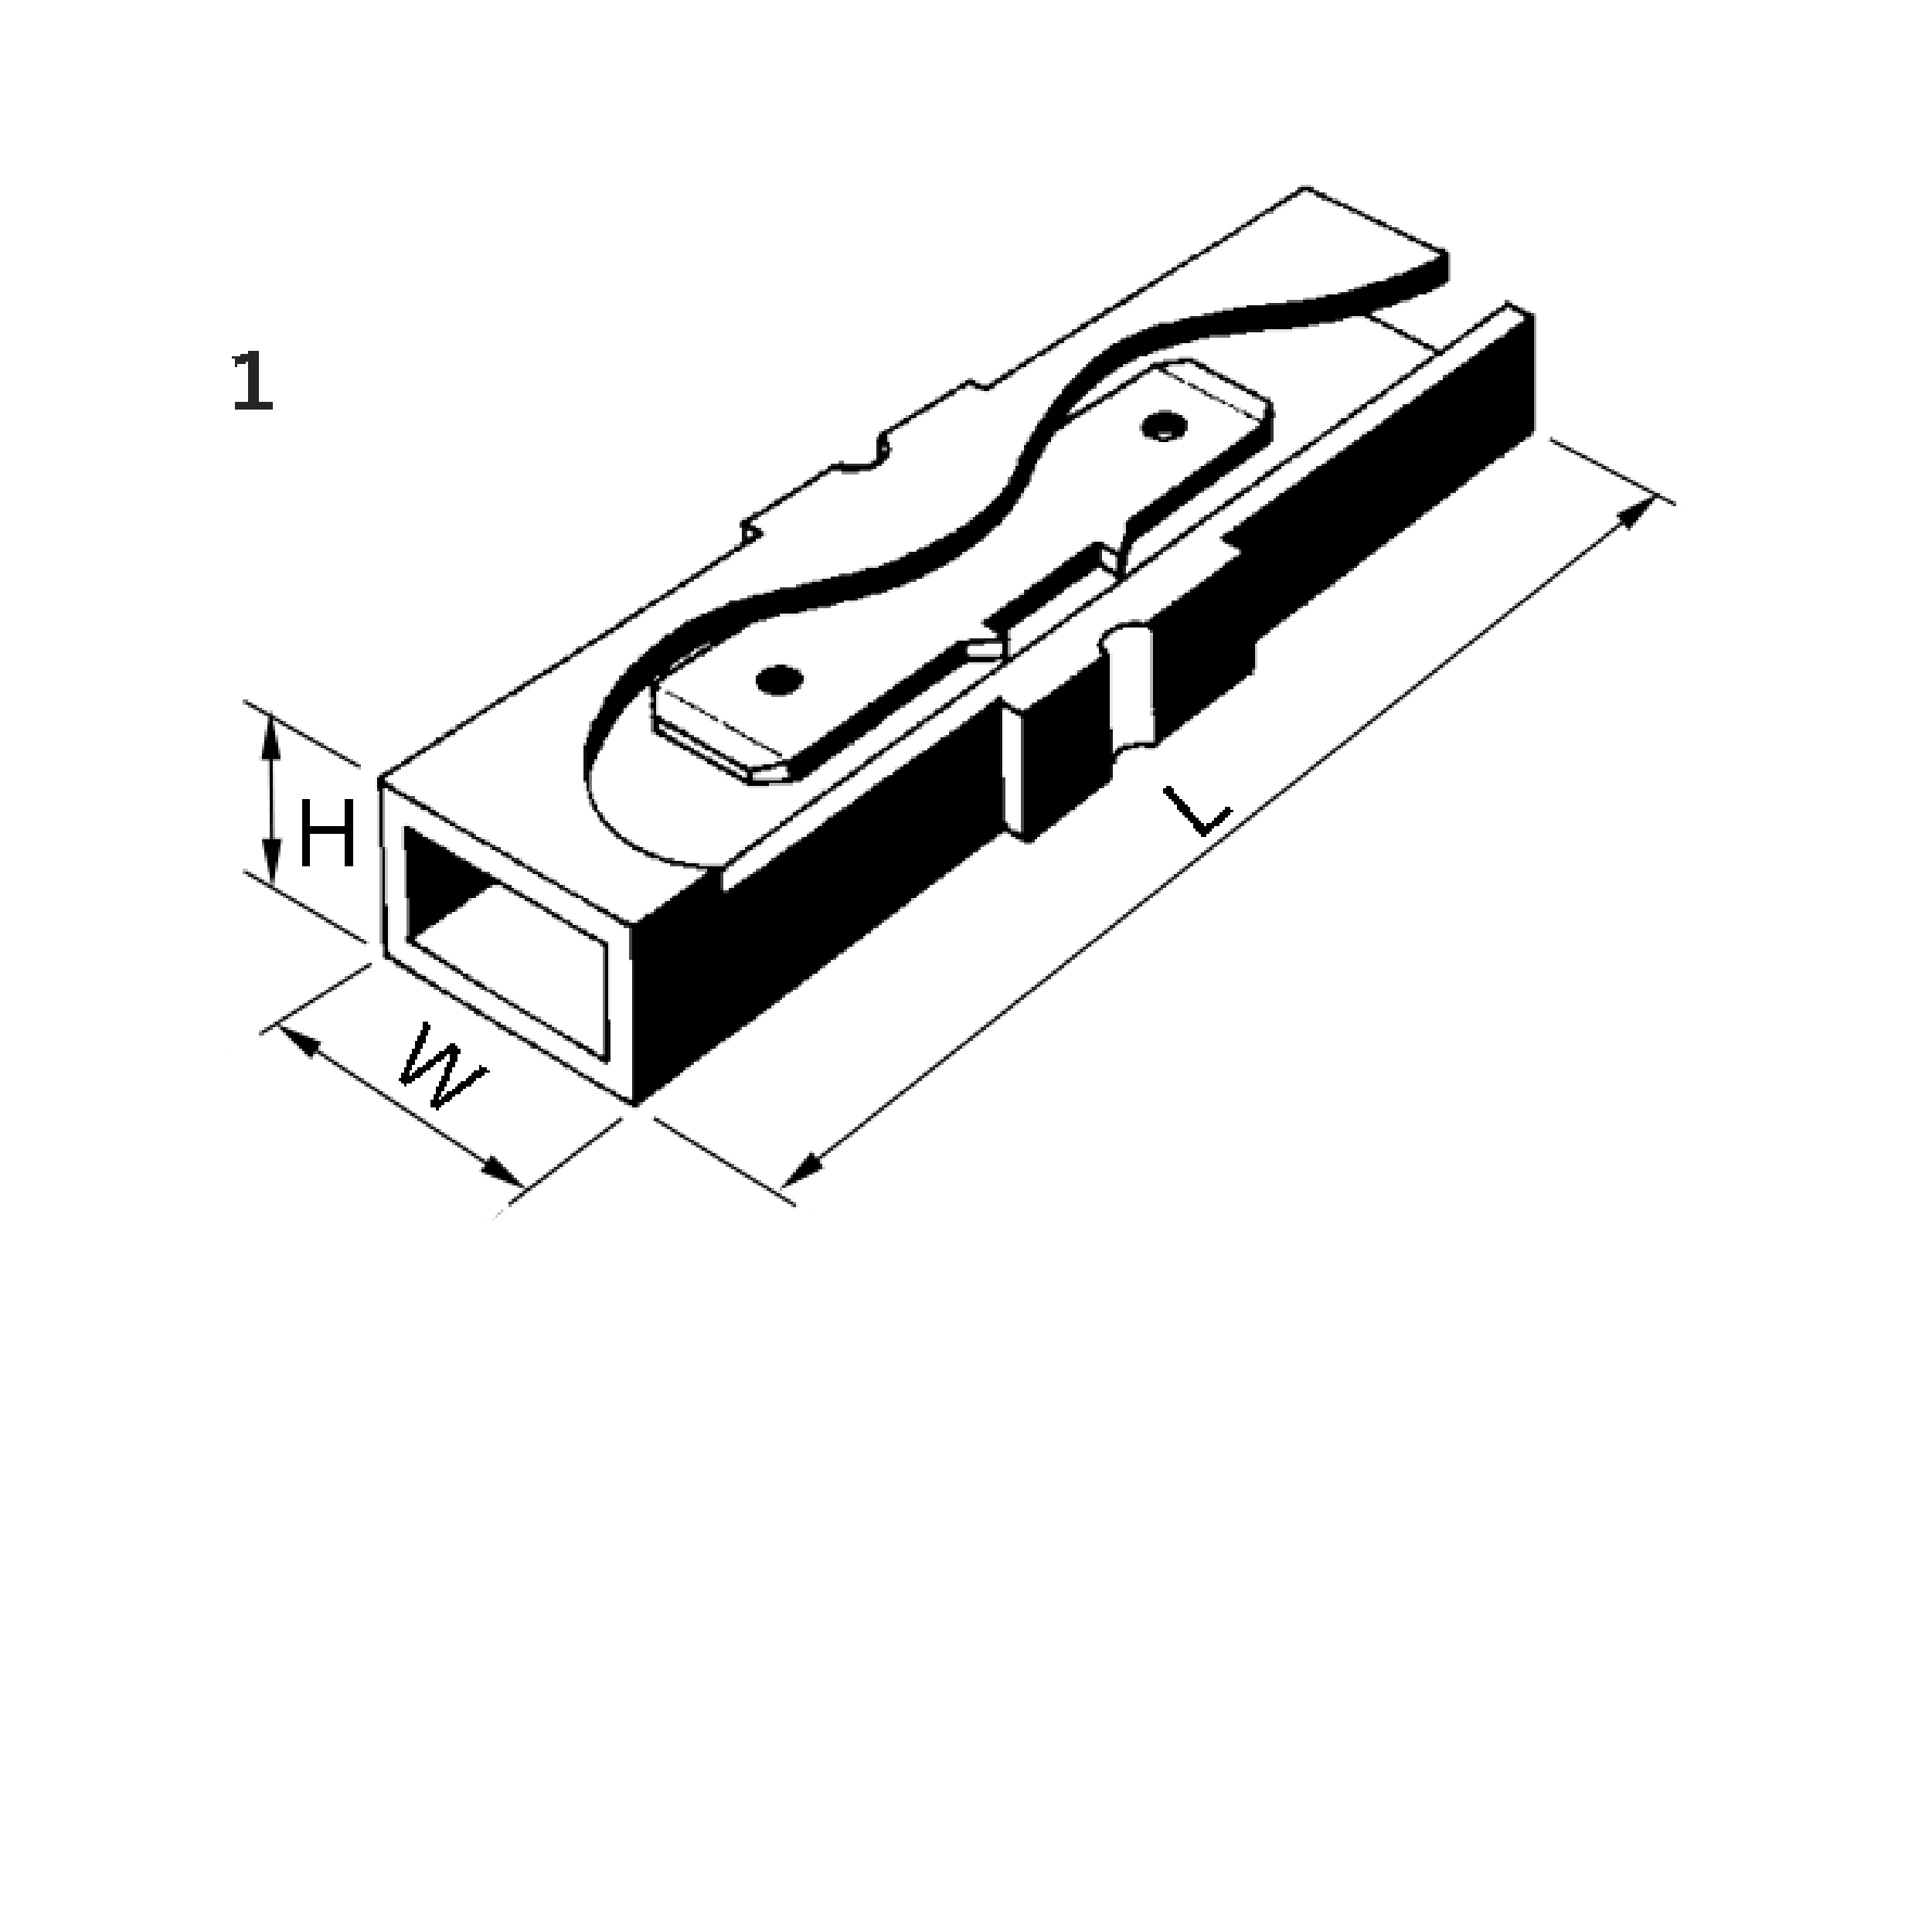 Elpress Un-Insulated Connector Blocks used together with receptacles